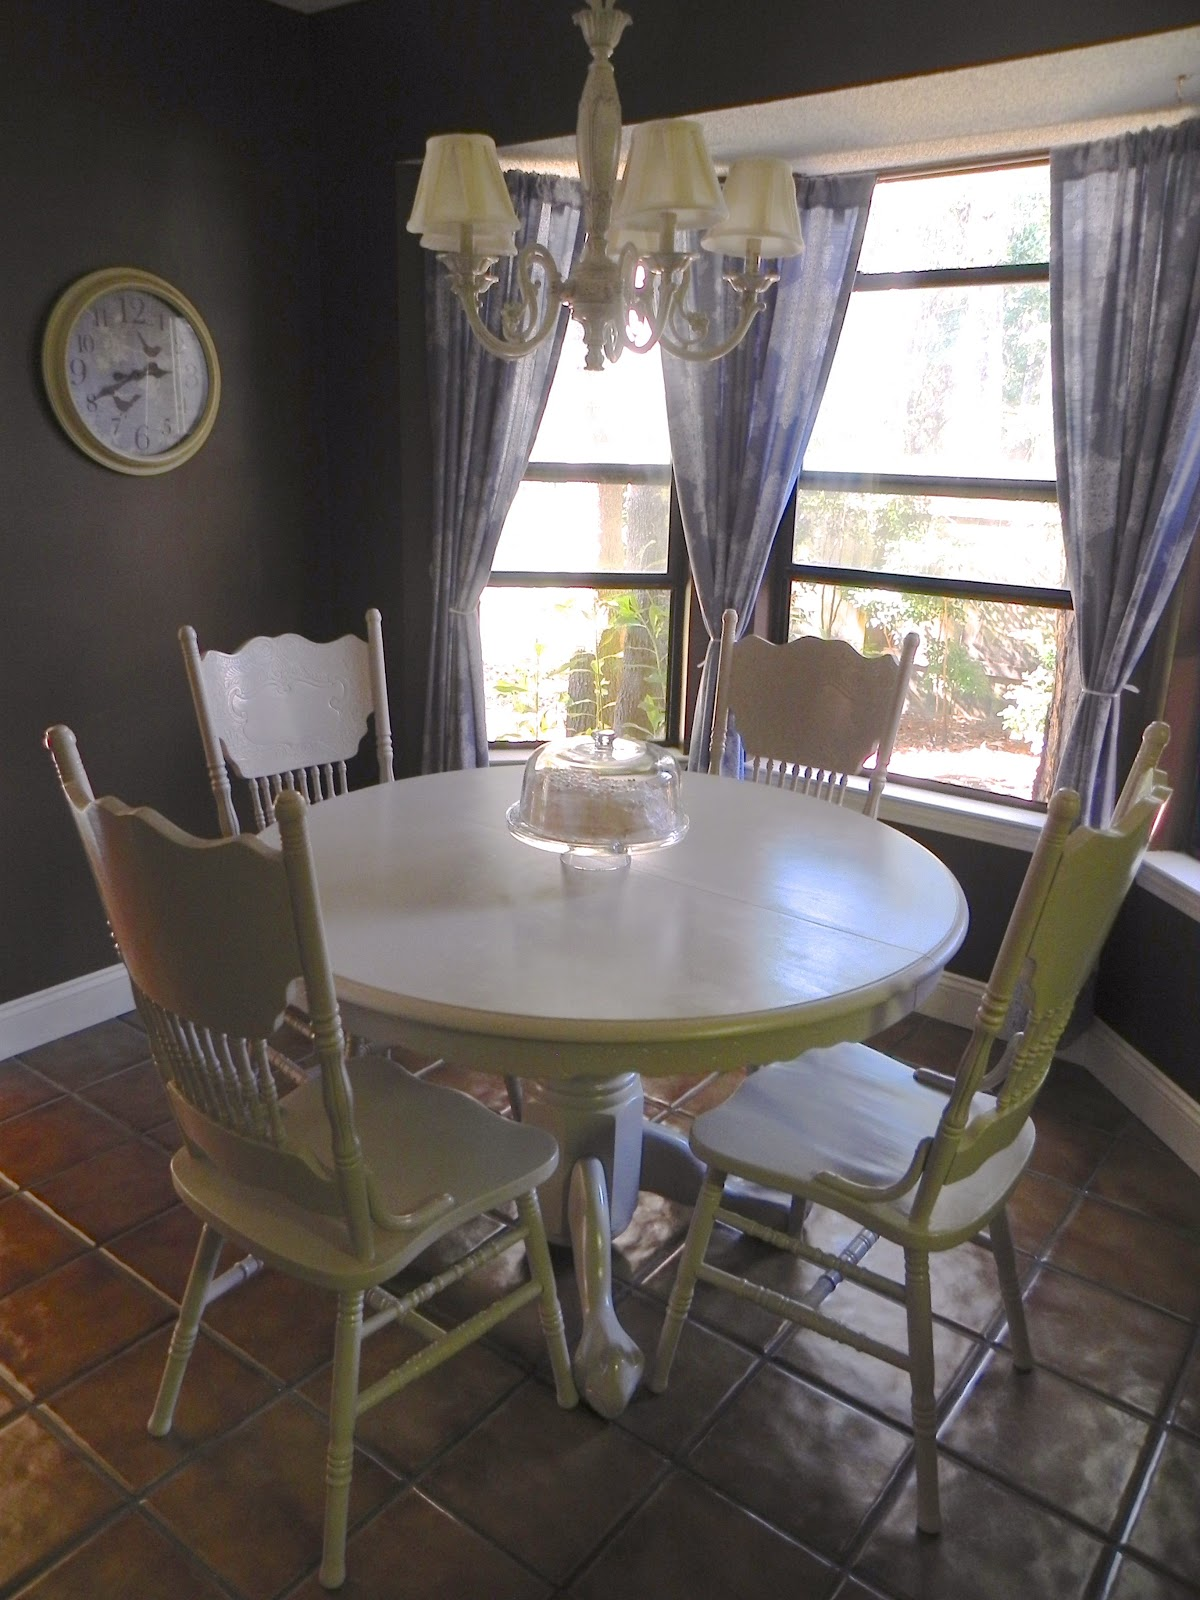 Pretty bones operation fallout repurposing dining table for Dining room operations